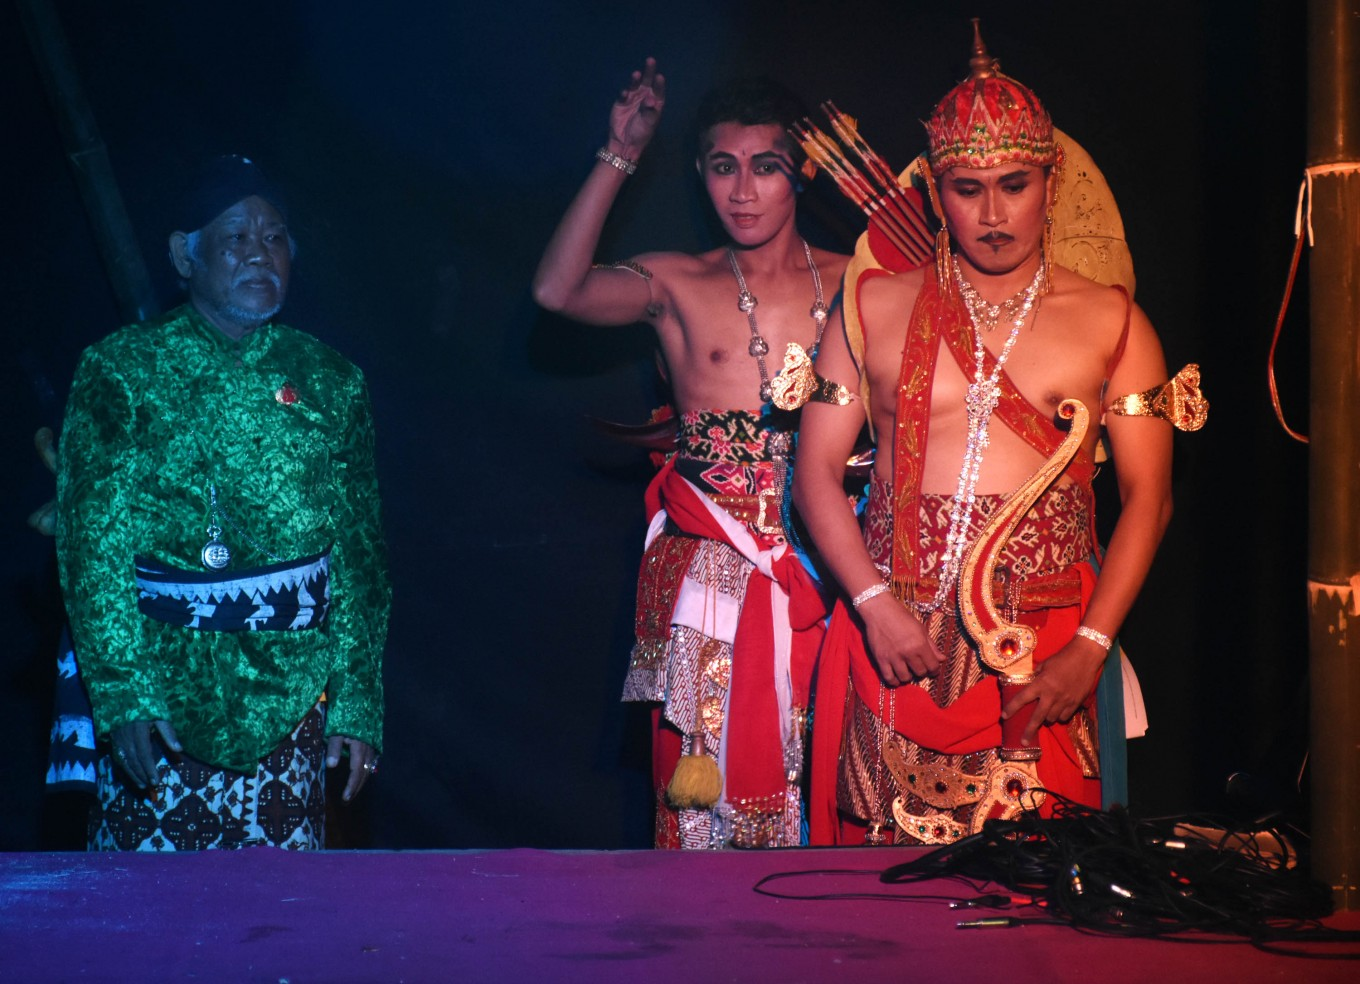 The 'Sang Putra Kunti' story, performed on Saturday by a 'wayang orang penget' troupe at the Rampal Celaket subdistrict office in Malang, East Java, tells of the sibling rivalry between Karna and Arjuna, two brothers who have very different fates. 'Sang Putra Kunti' was inspired by the tales in the 'Mahabharata' epic.